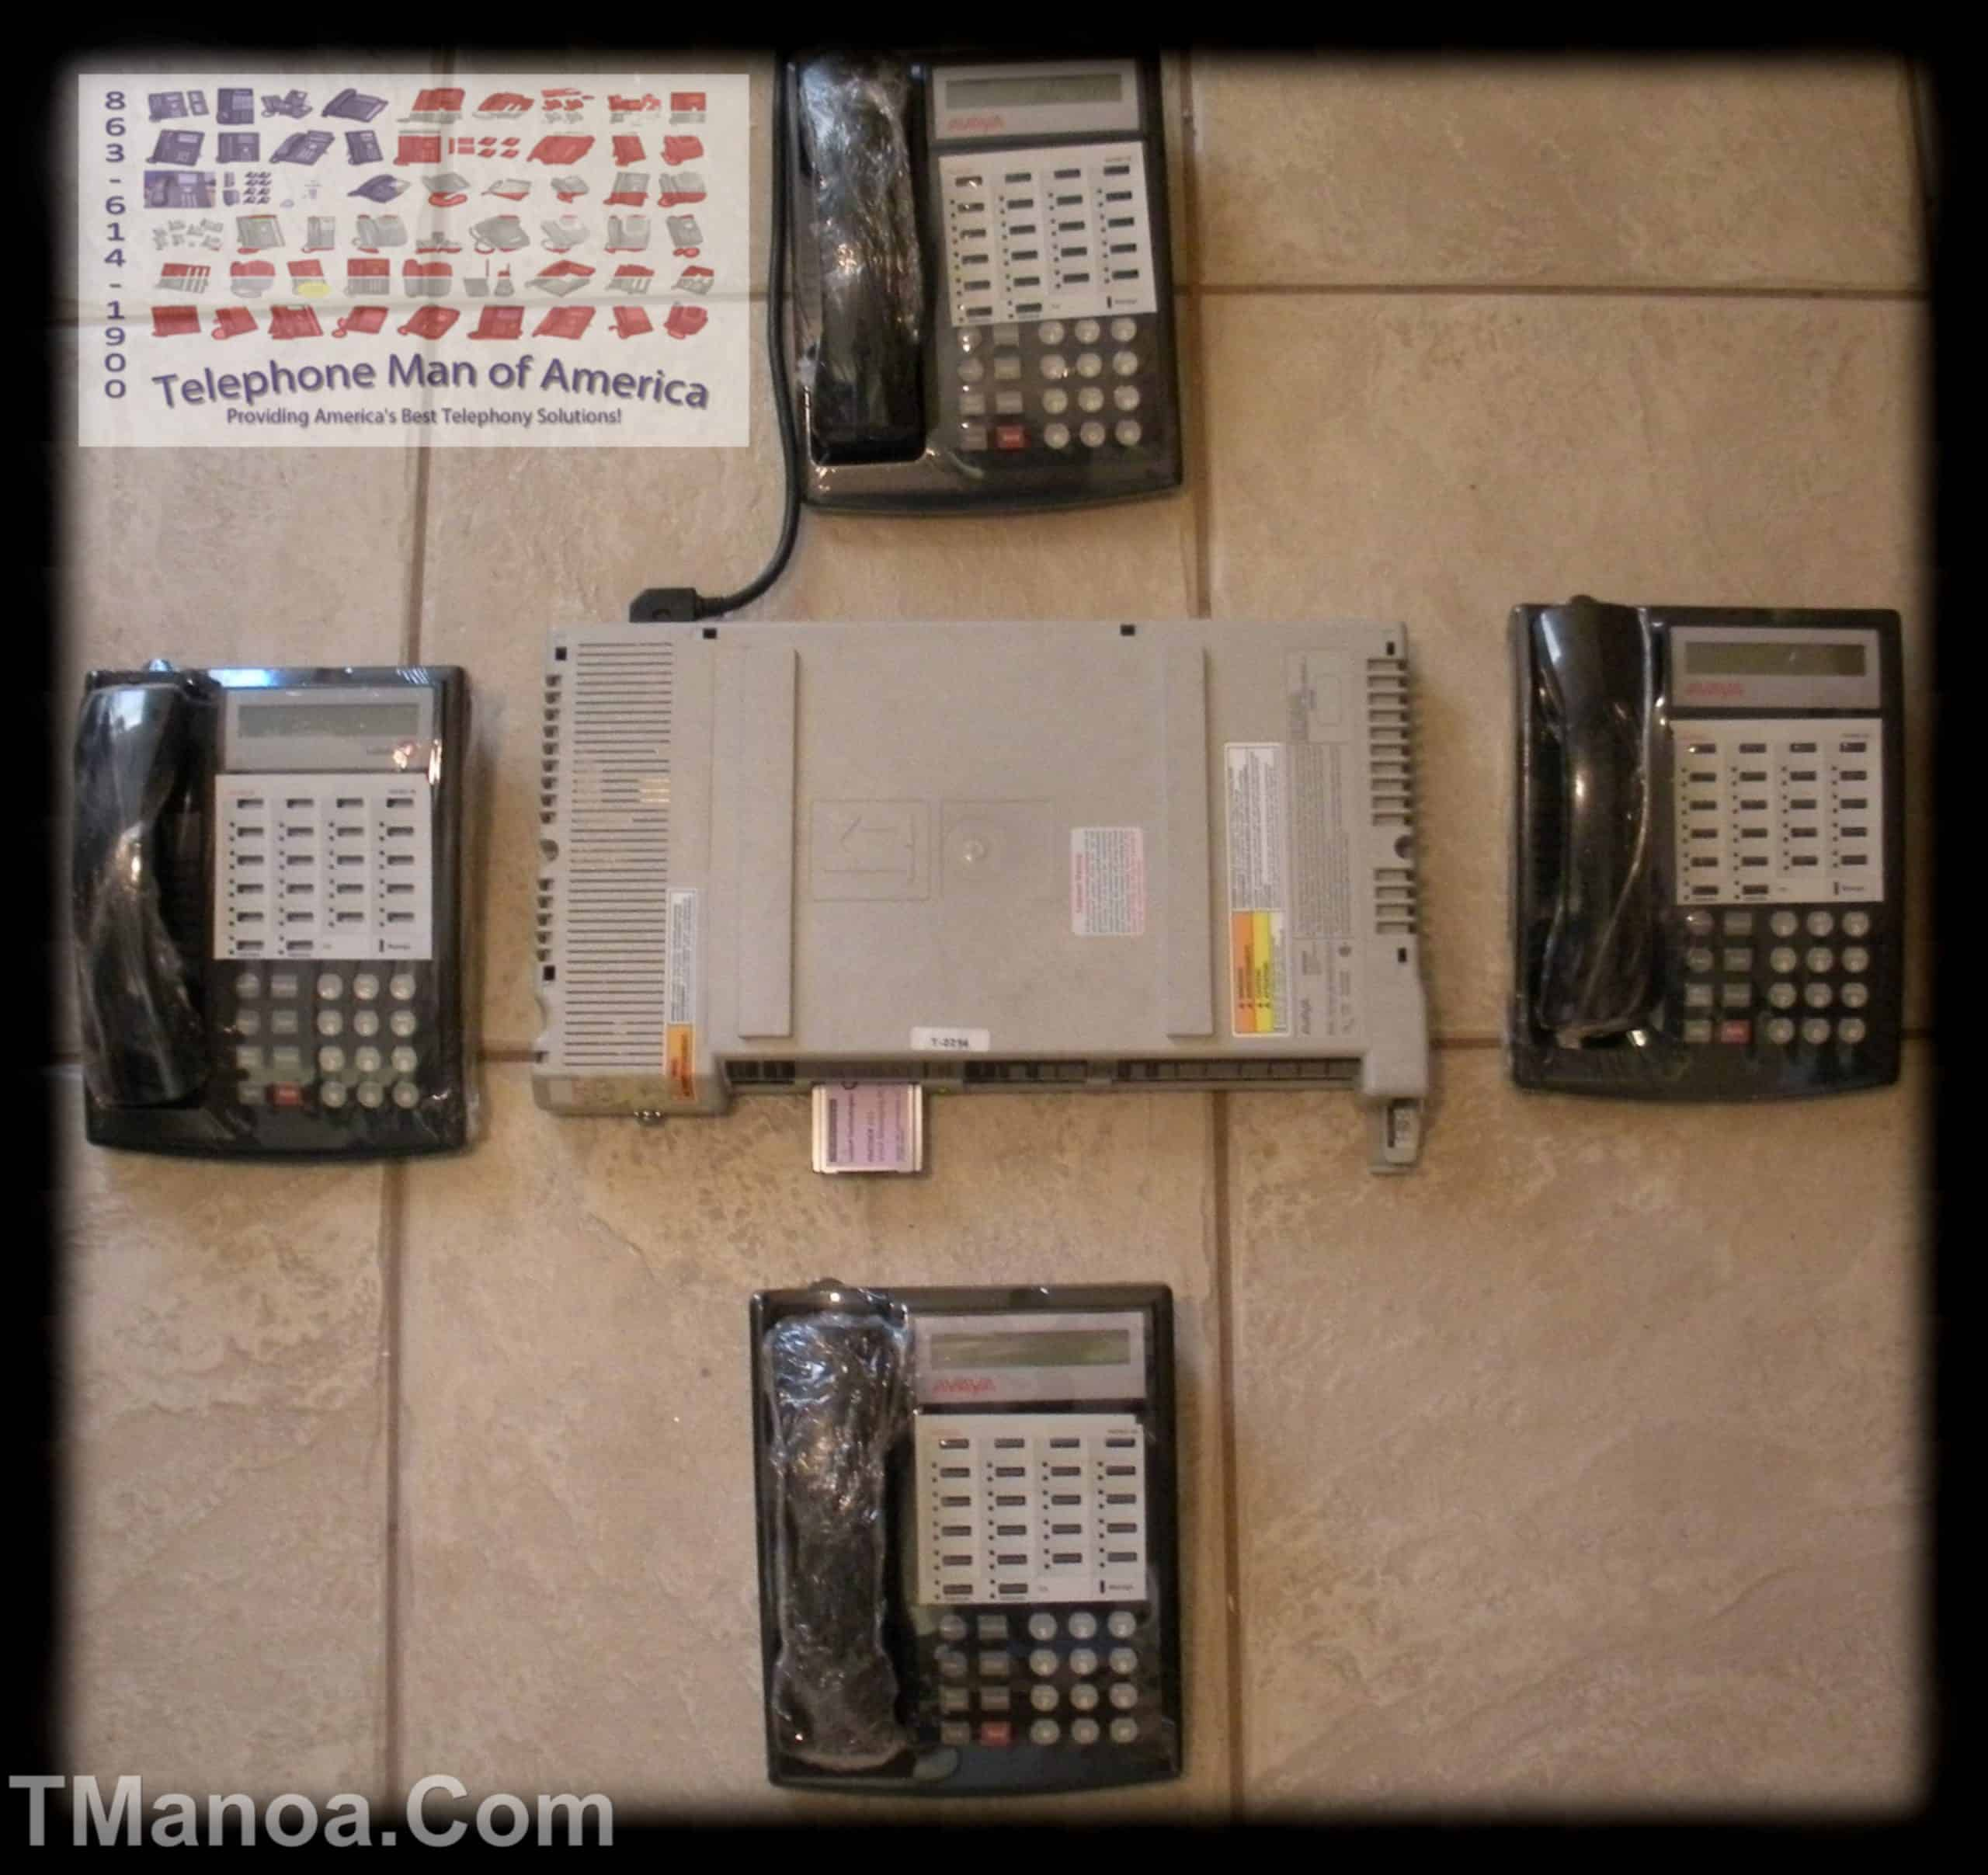 Avaya Partner ACS Business Phone System with Voice mail and 4 Partner 18D Series 1 Black Phones